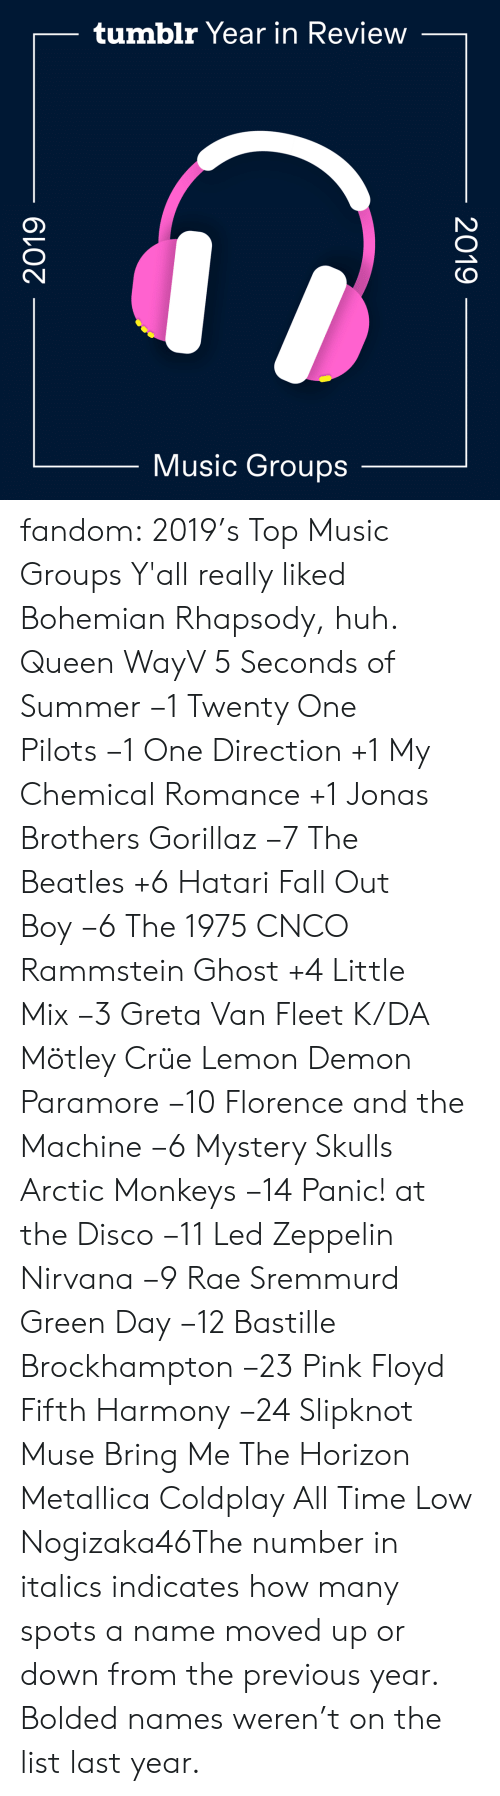 Nirvana: tumblr Year in Review  Music Groups  2019  2019 fandom:  2019's Top Music Groups  Y'all really liked Bohemian Rhapsody, huh.  Queen  WayV  5 Seconds of Summer −1  Twenty One Pilots −1  One Direction +1  My Chemical Romance +1  Jonas Brothers  Gorillaz −7  The Beatles +6  Hatari  Fall Out Boy −6  The 1975  CNCO  Rammstein  Ghost +4  Little Mix −3  Greta Van Fleet  K/DA  Mötley Crüe  Lemon Demon  Paramore −10  Florence and the Machine −6  Mystery Skulls  Arctic Monkeys −14  Panic! at the Disco −11  Led Zeppelin   Nirvana −9  Rae Sremmurd  Green Day −12  Bastille  Brockhampton −23  Pink Floyd  Fifth Harmony −24  Slipknot  Muse  Bring Me The Horizon  Metallica  Coldplay  All Time Low  Nogizaka46The number in italics indicates how many spots a name moved up or down from the previous year. Bolded names weren't on the list last year.